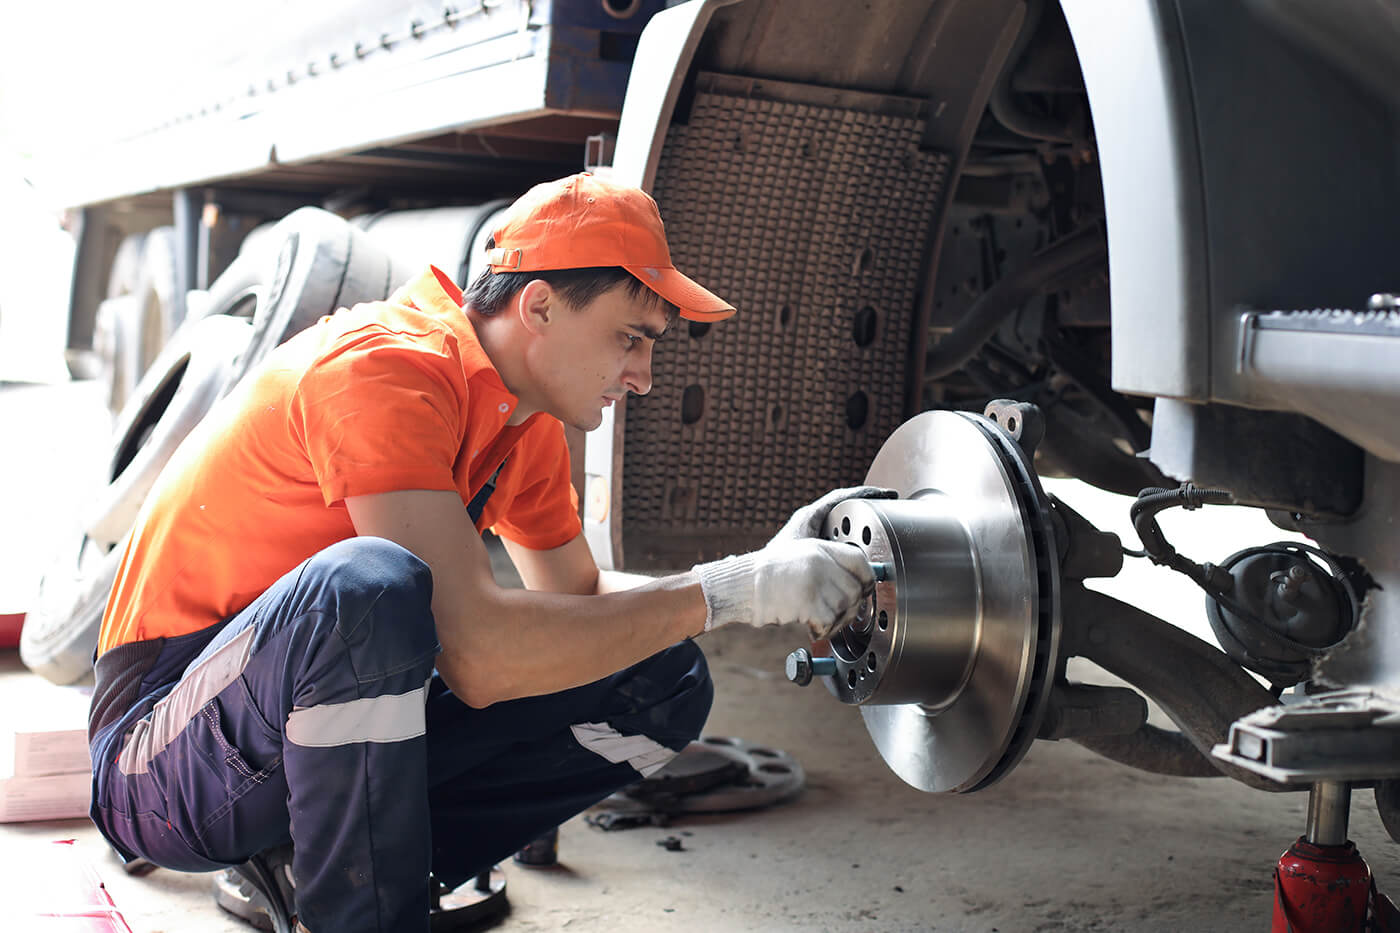 brake-safety-inspection-visual